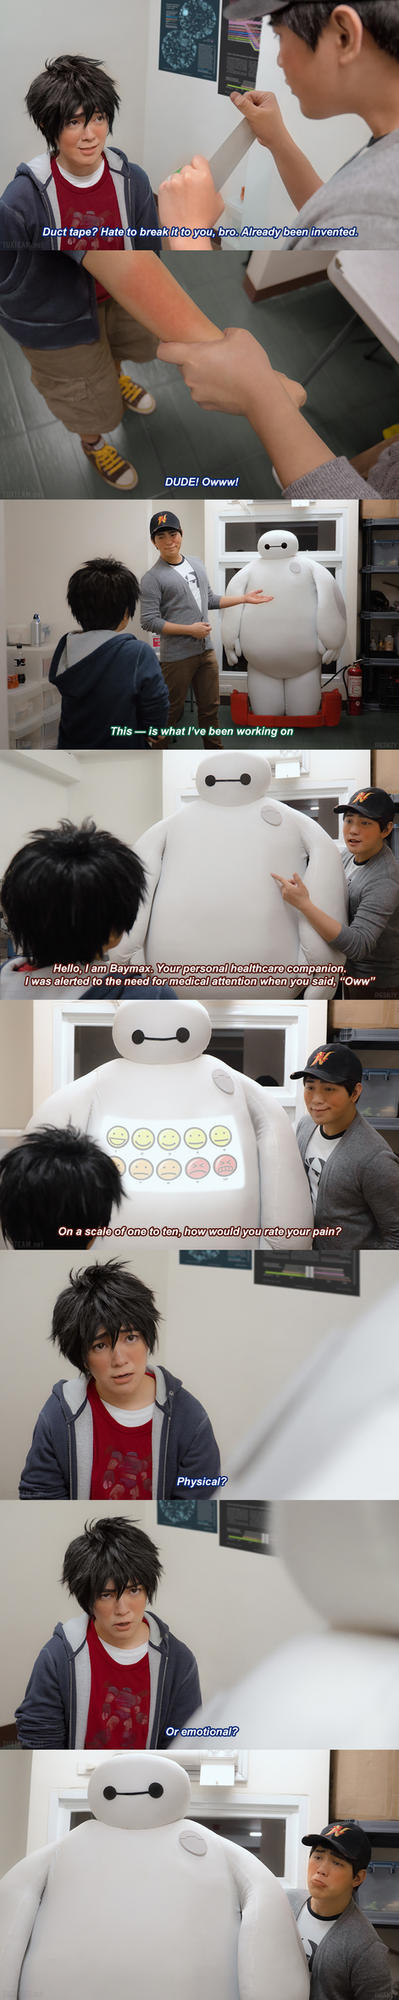 Big Hero 6: How would you rate your pain? by behindinfinity